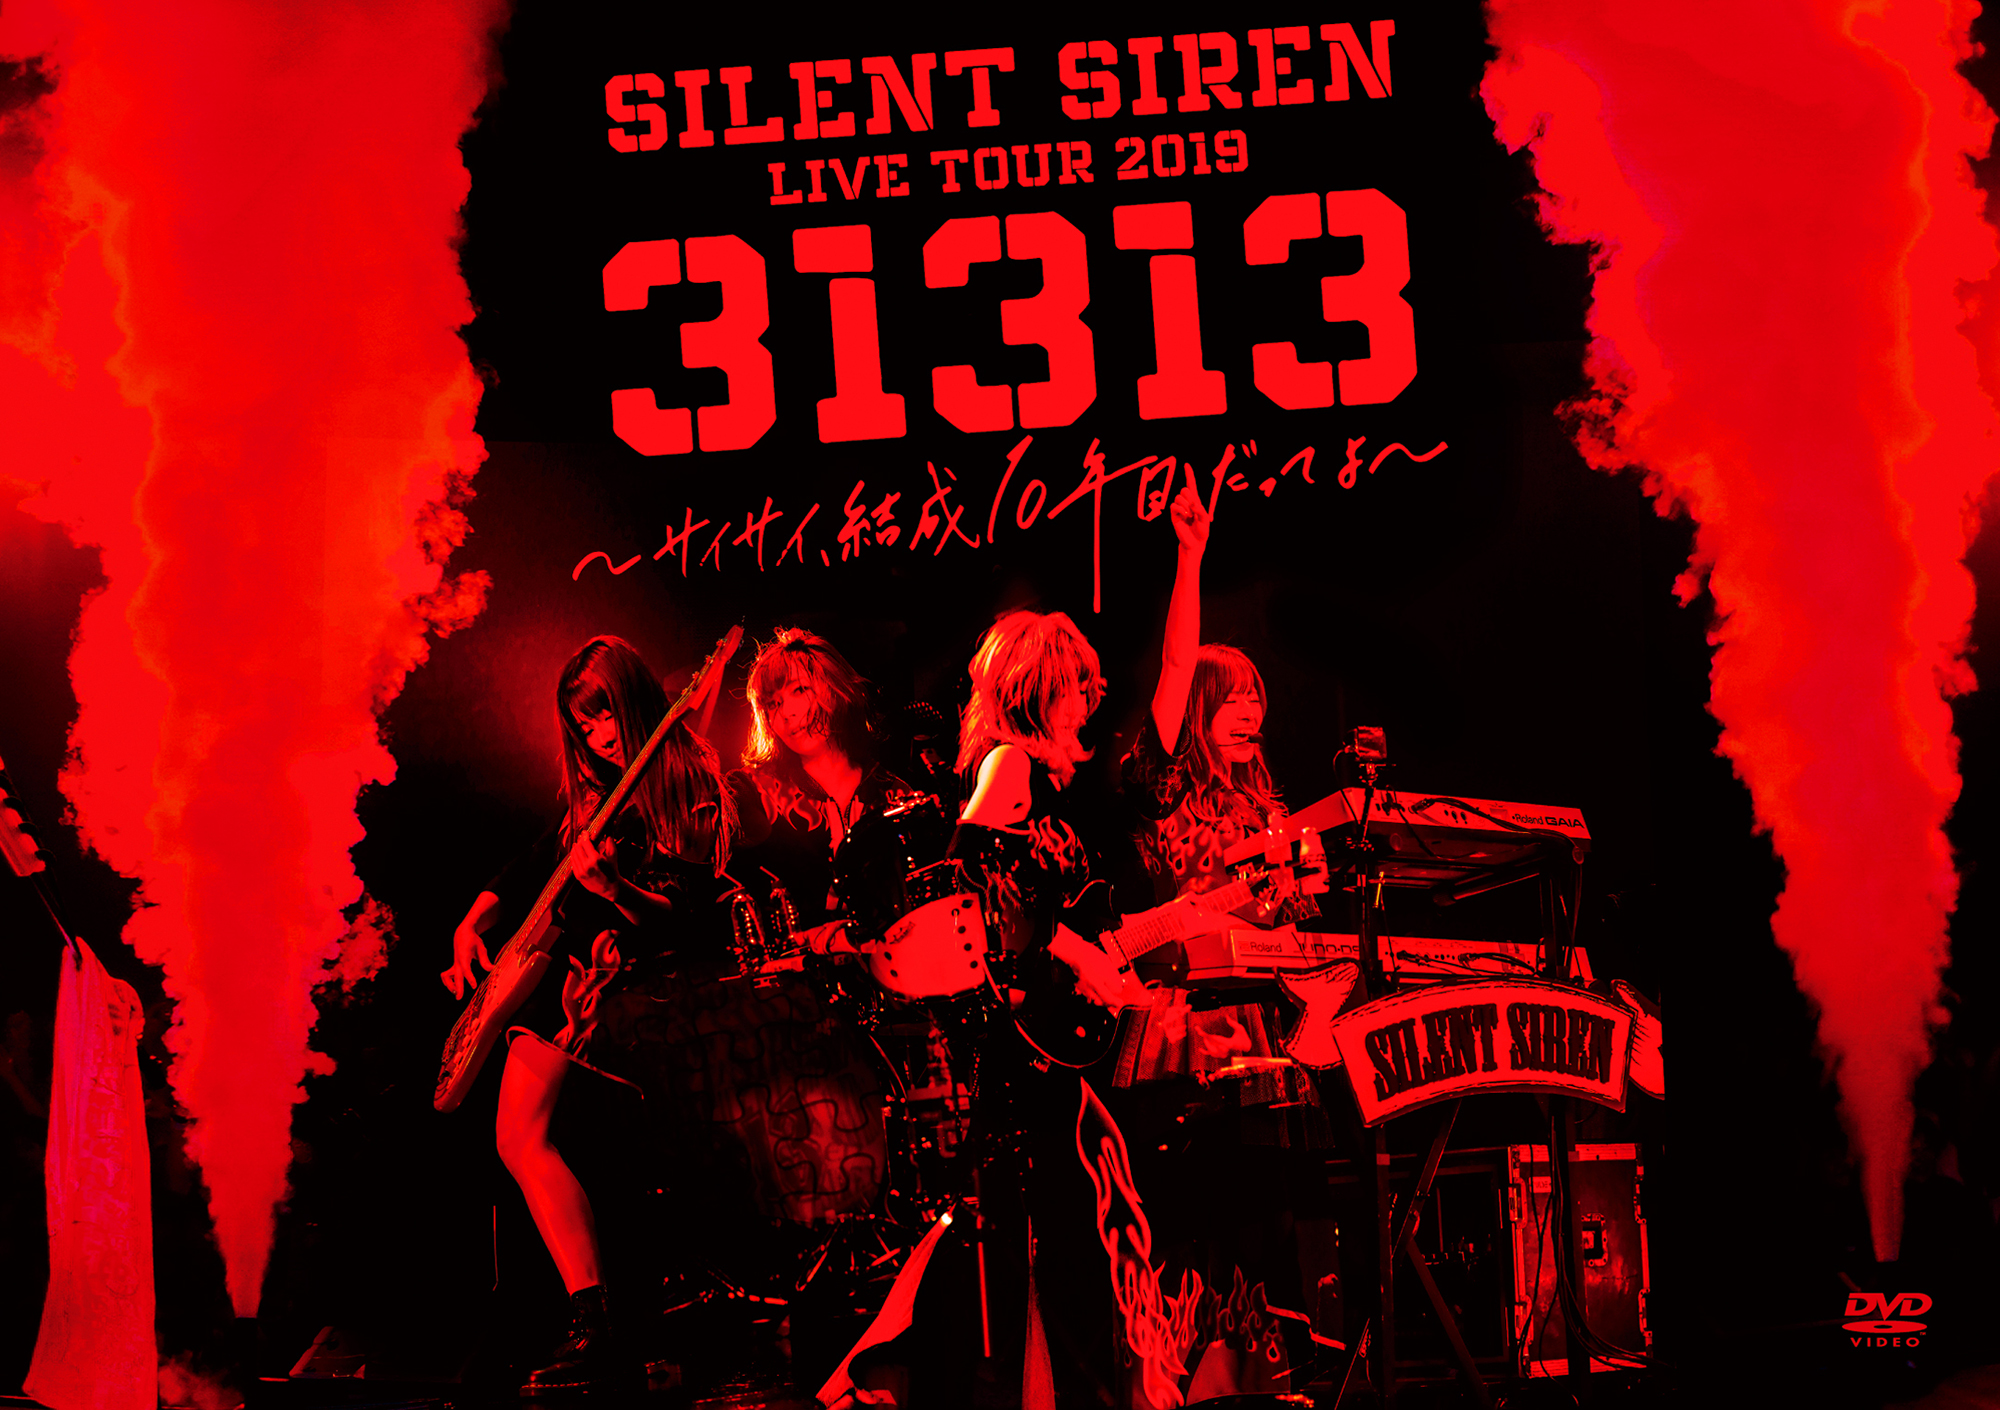 『SILENT SIREN LIVE TOUR 2019「31313」〜サイサイ、結成10年目だってよ〜 supported by 天下一品 @ Zepp DiverCity』DVD盤